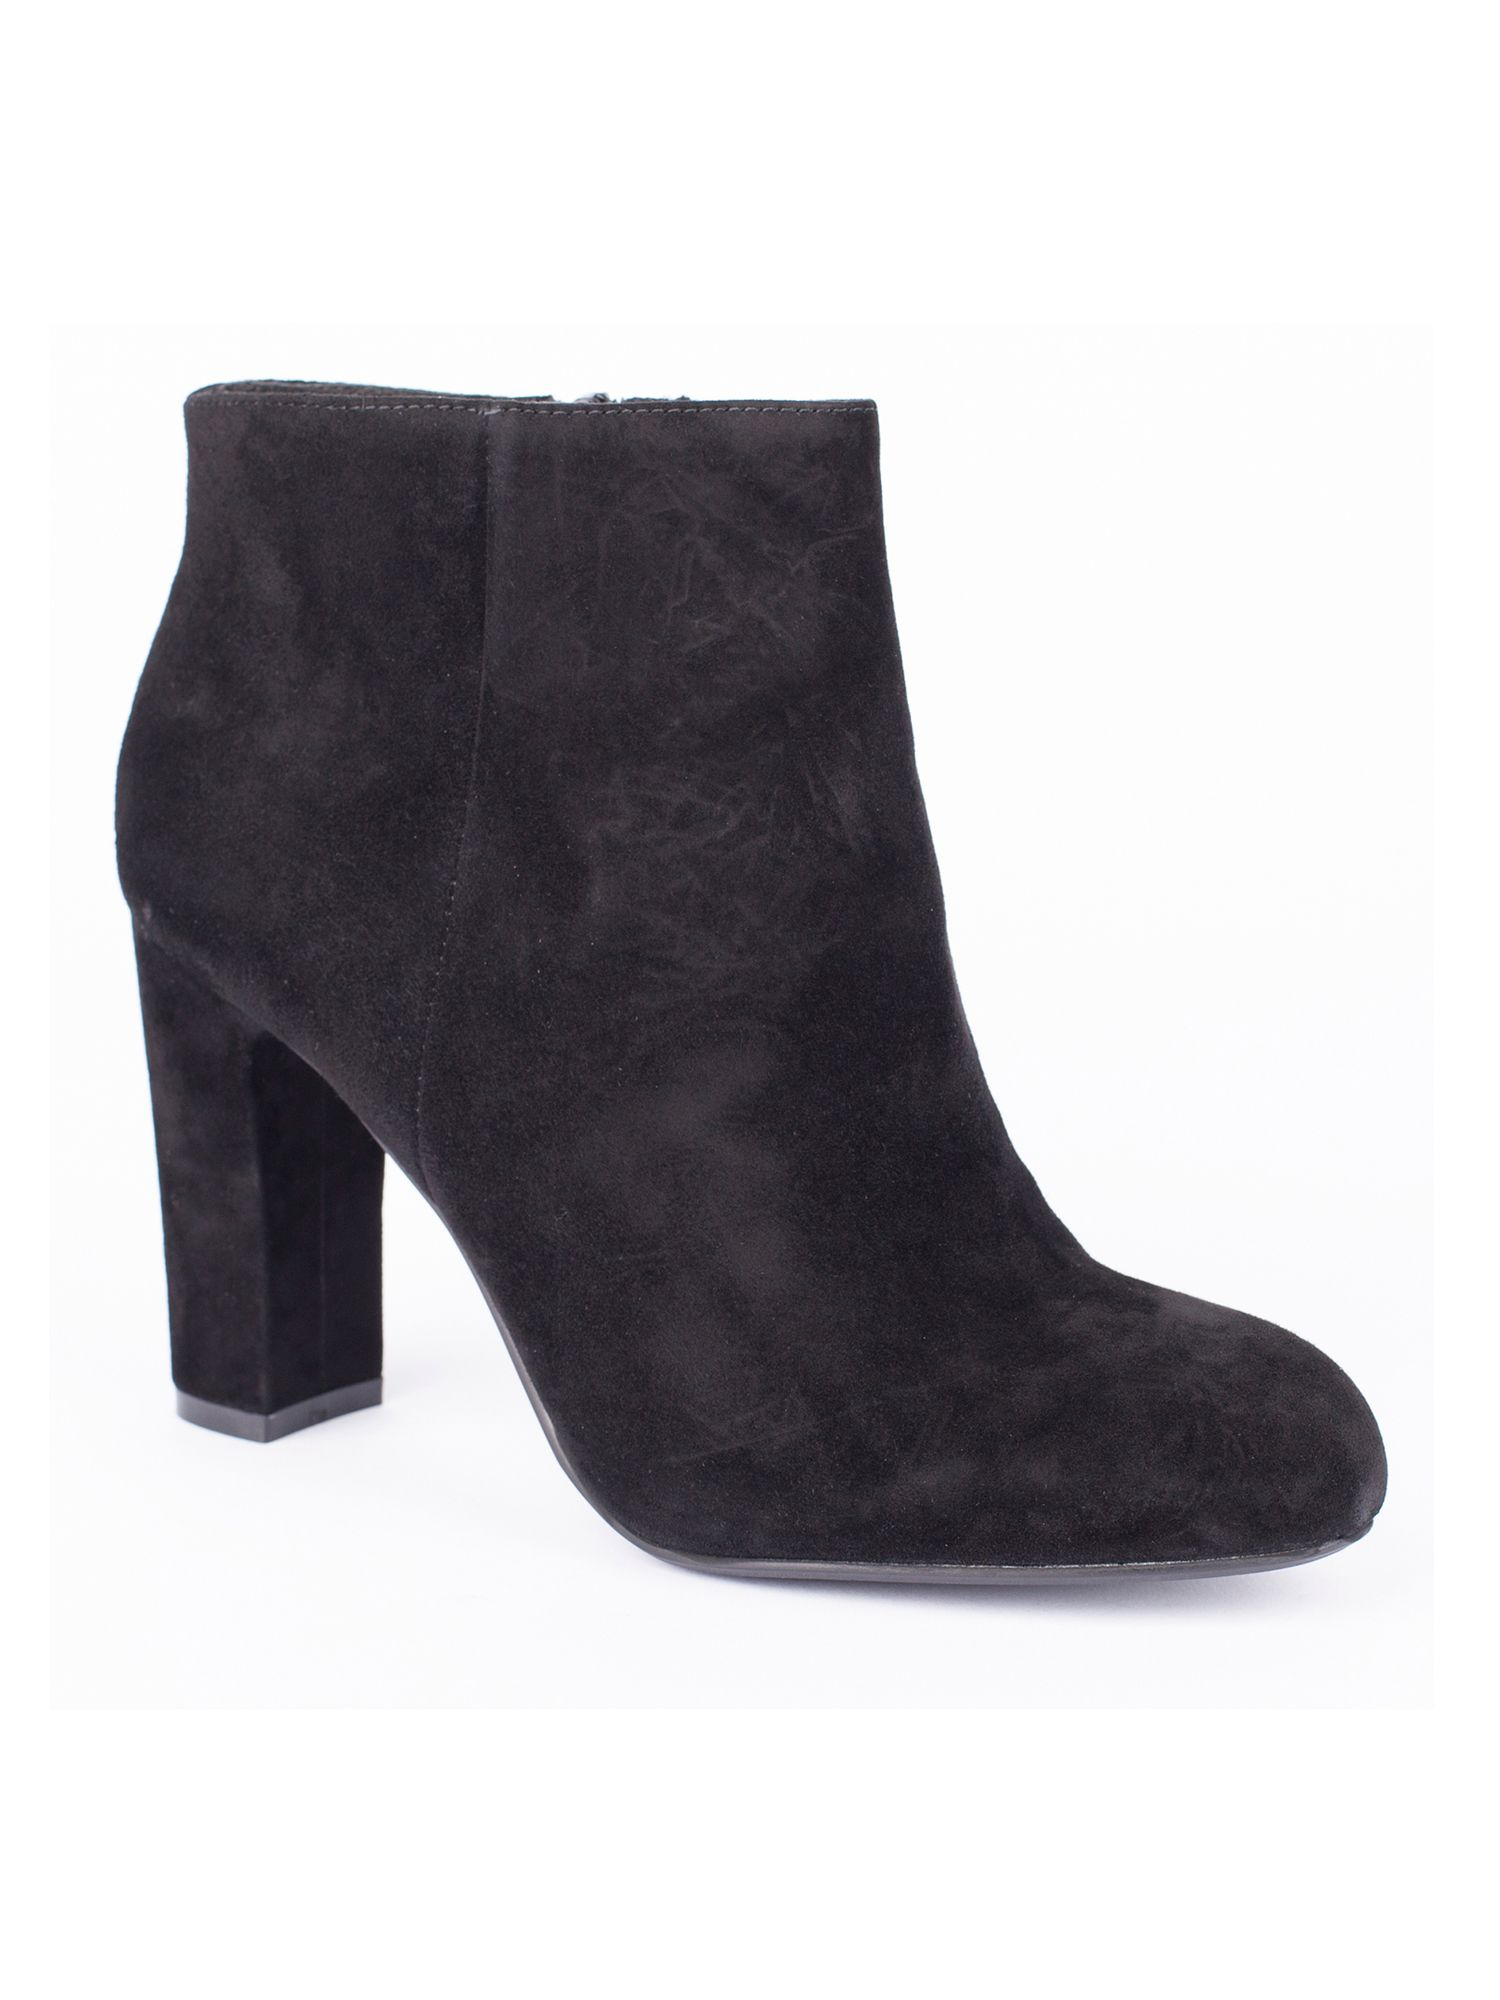 Narelle High Heeled Ankle Boot